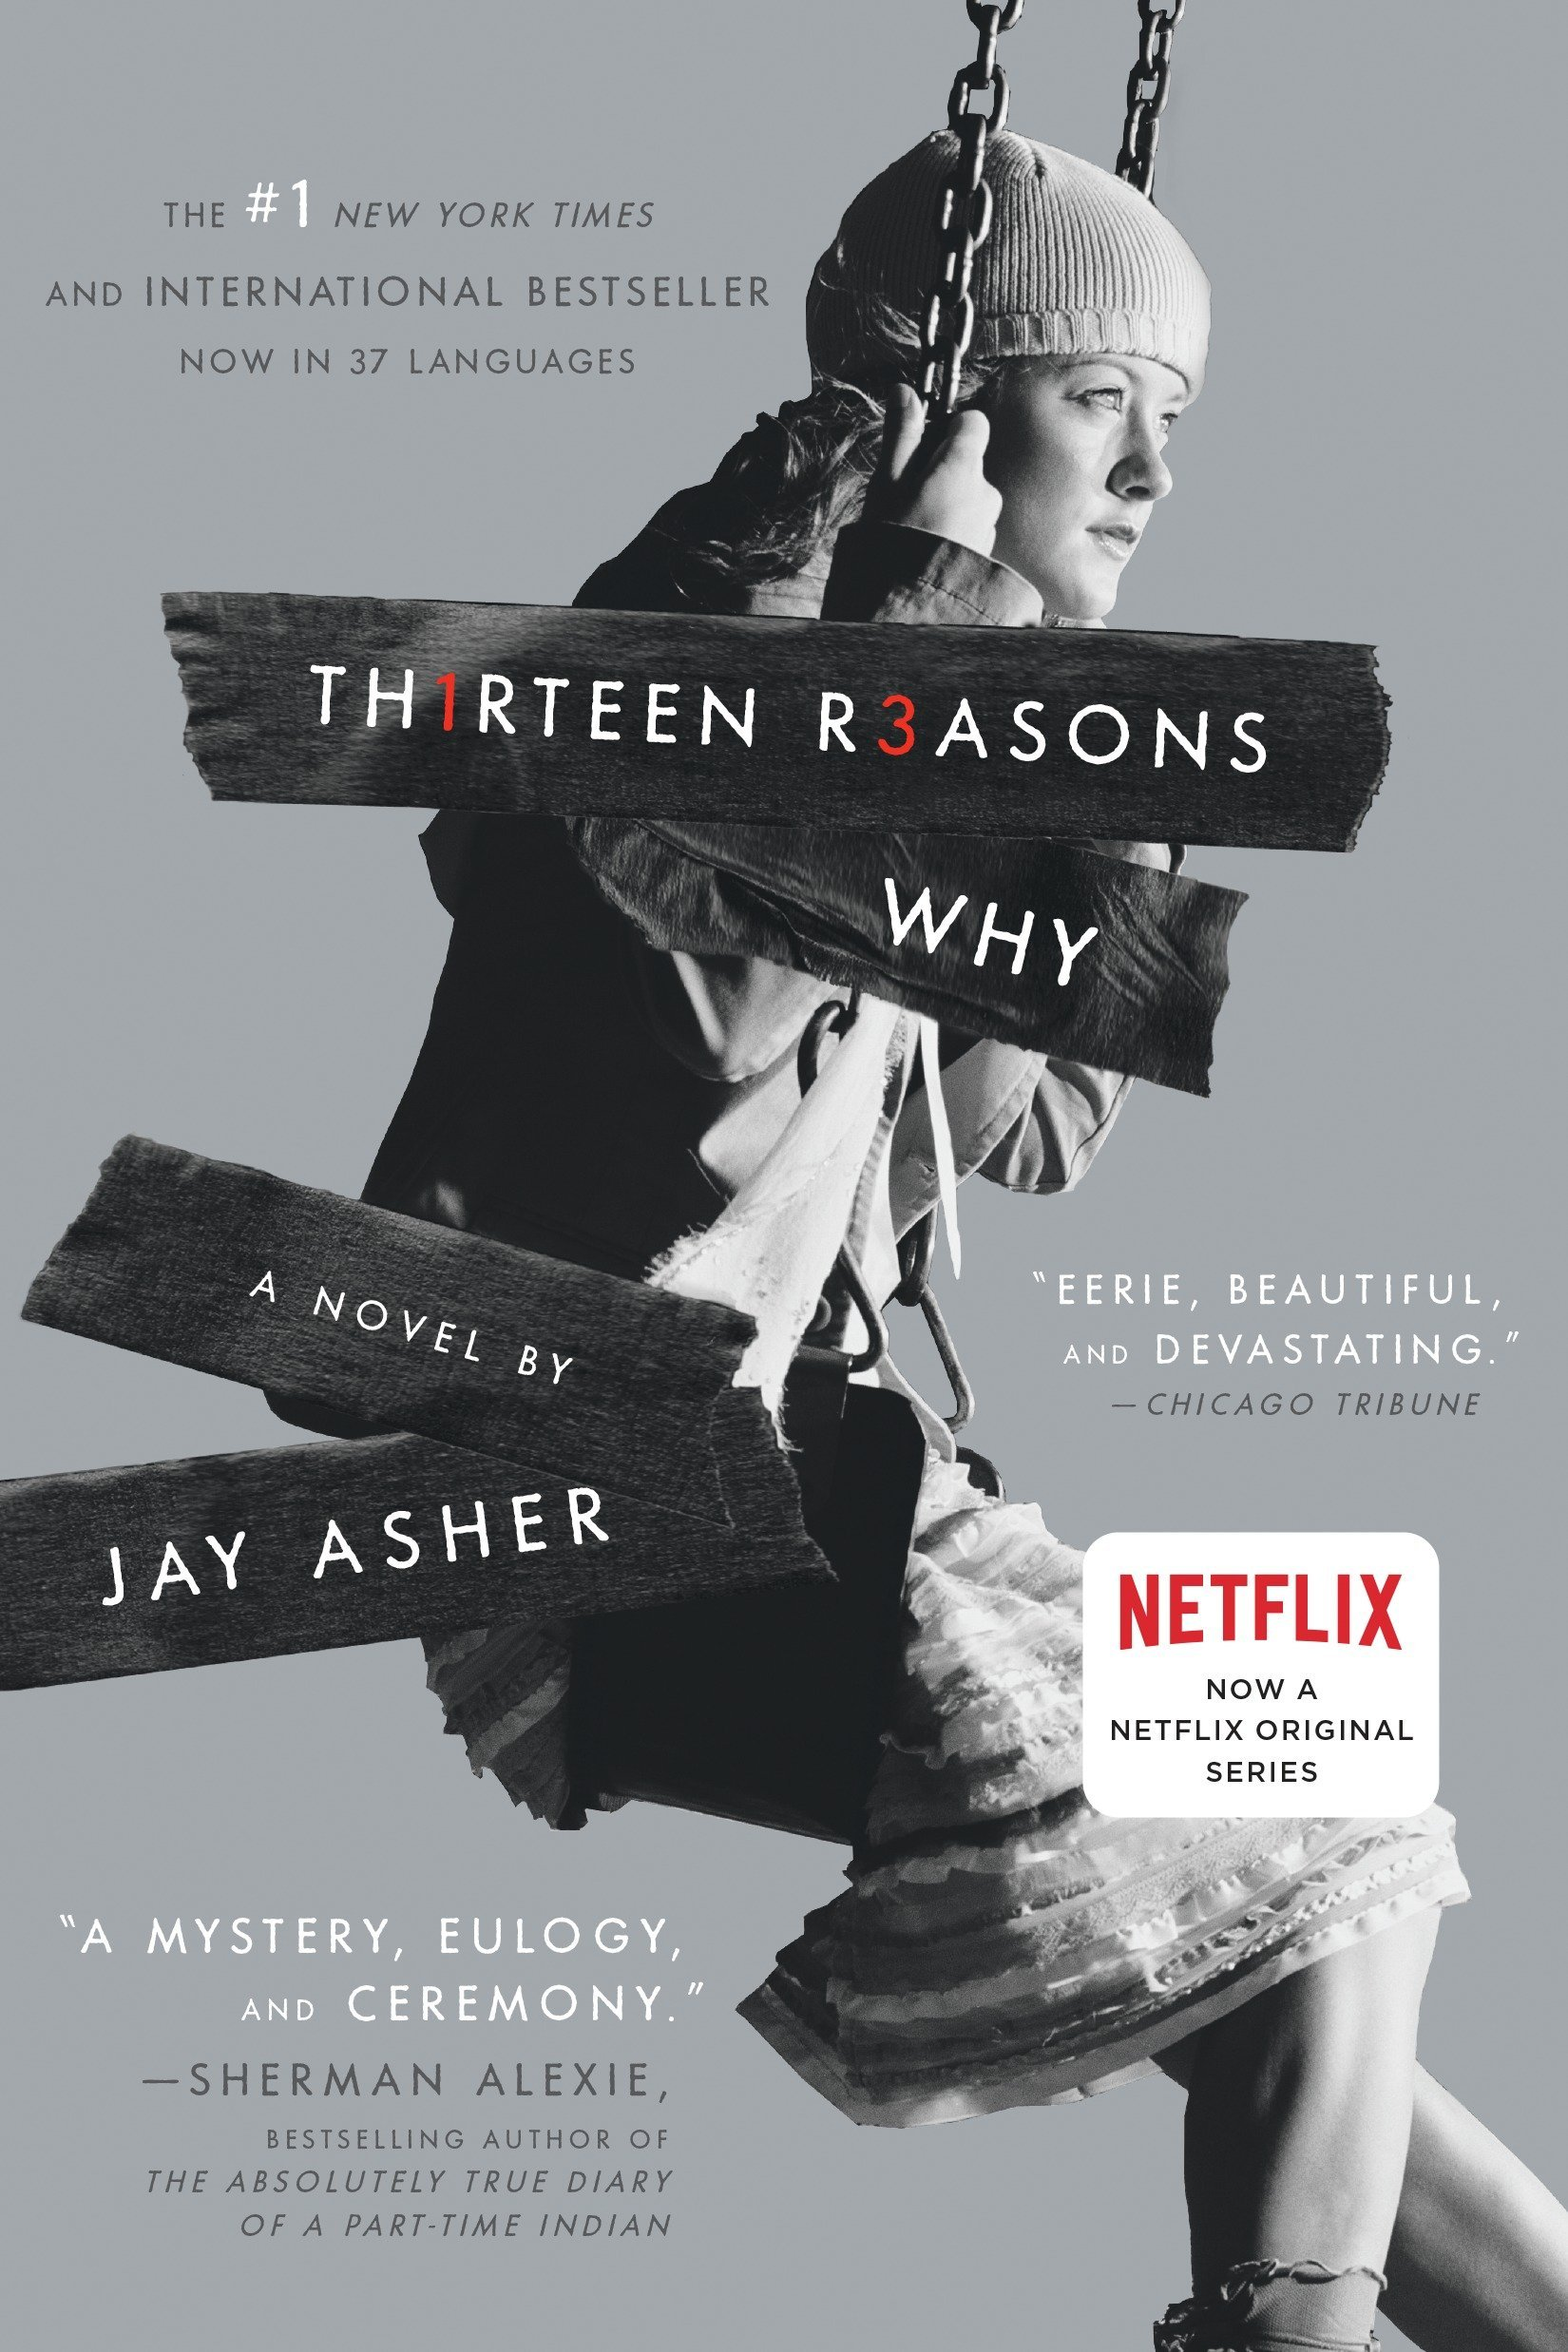 thirteen-reasons-why-book-cover.jpg